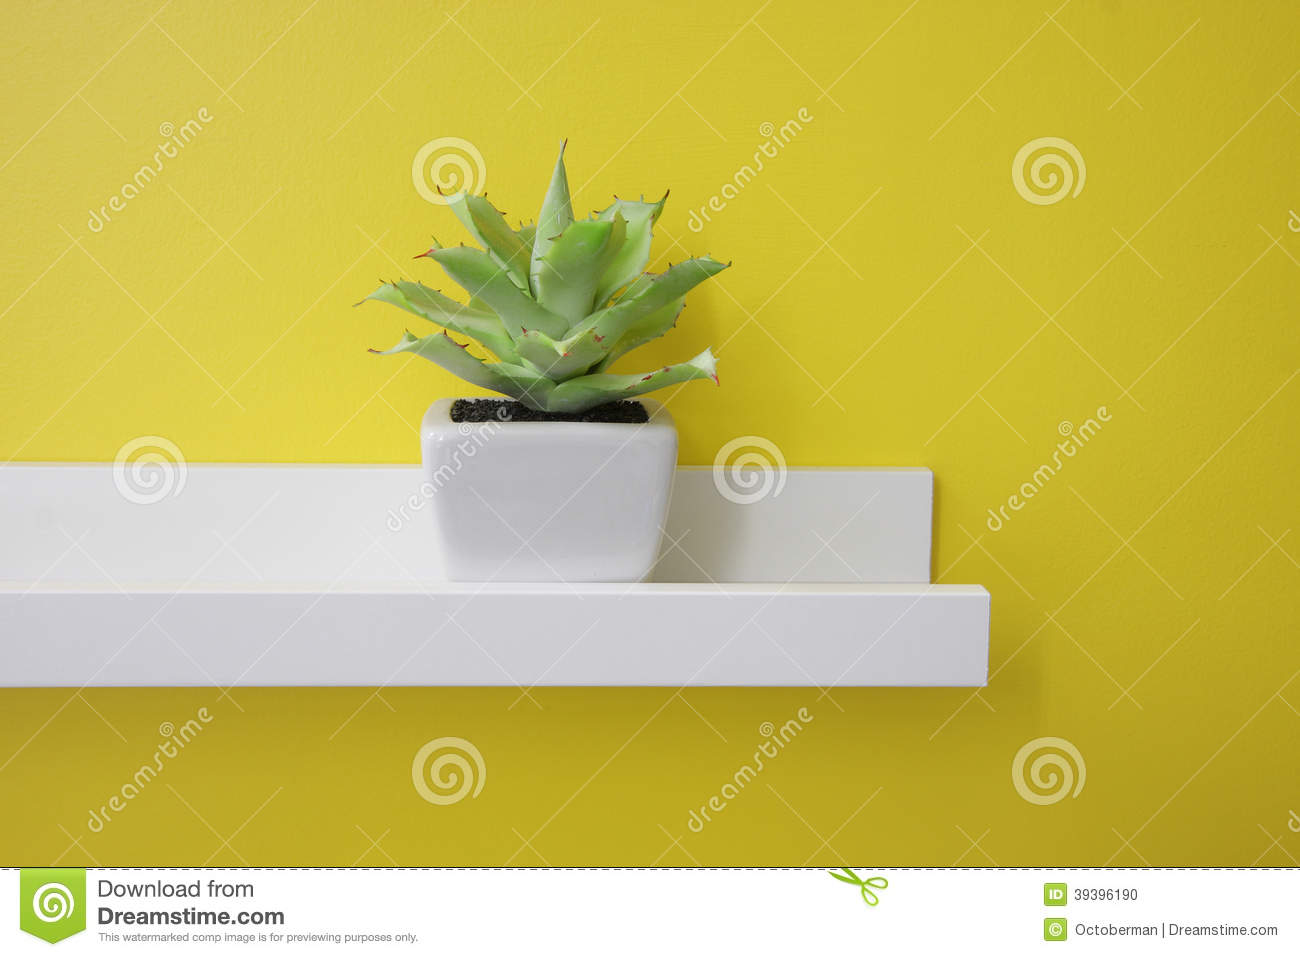 A Small Green Plant On A White Shelf, Yellow Wall Stock Photo - Image: 39396190